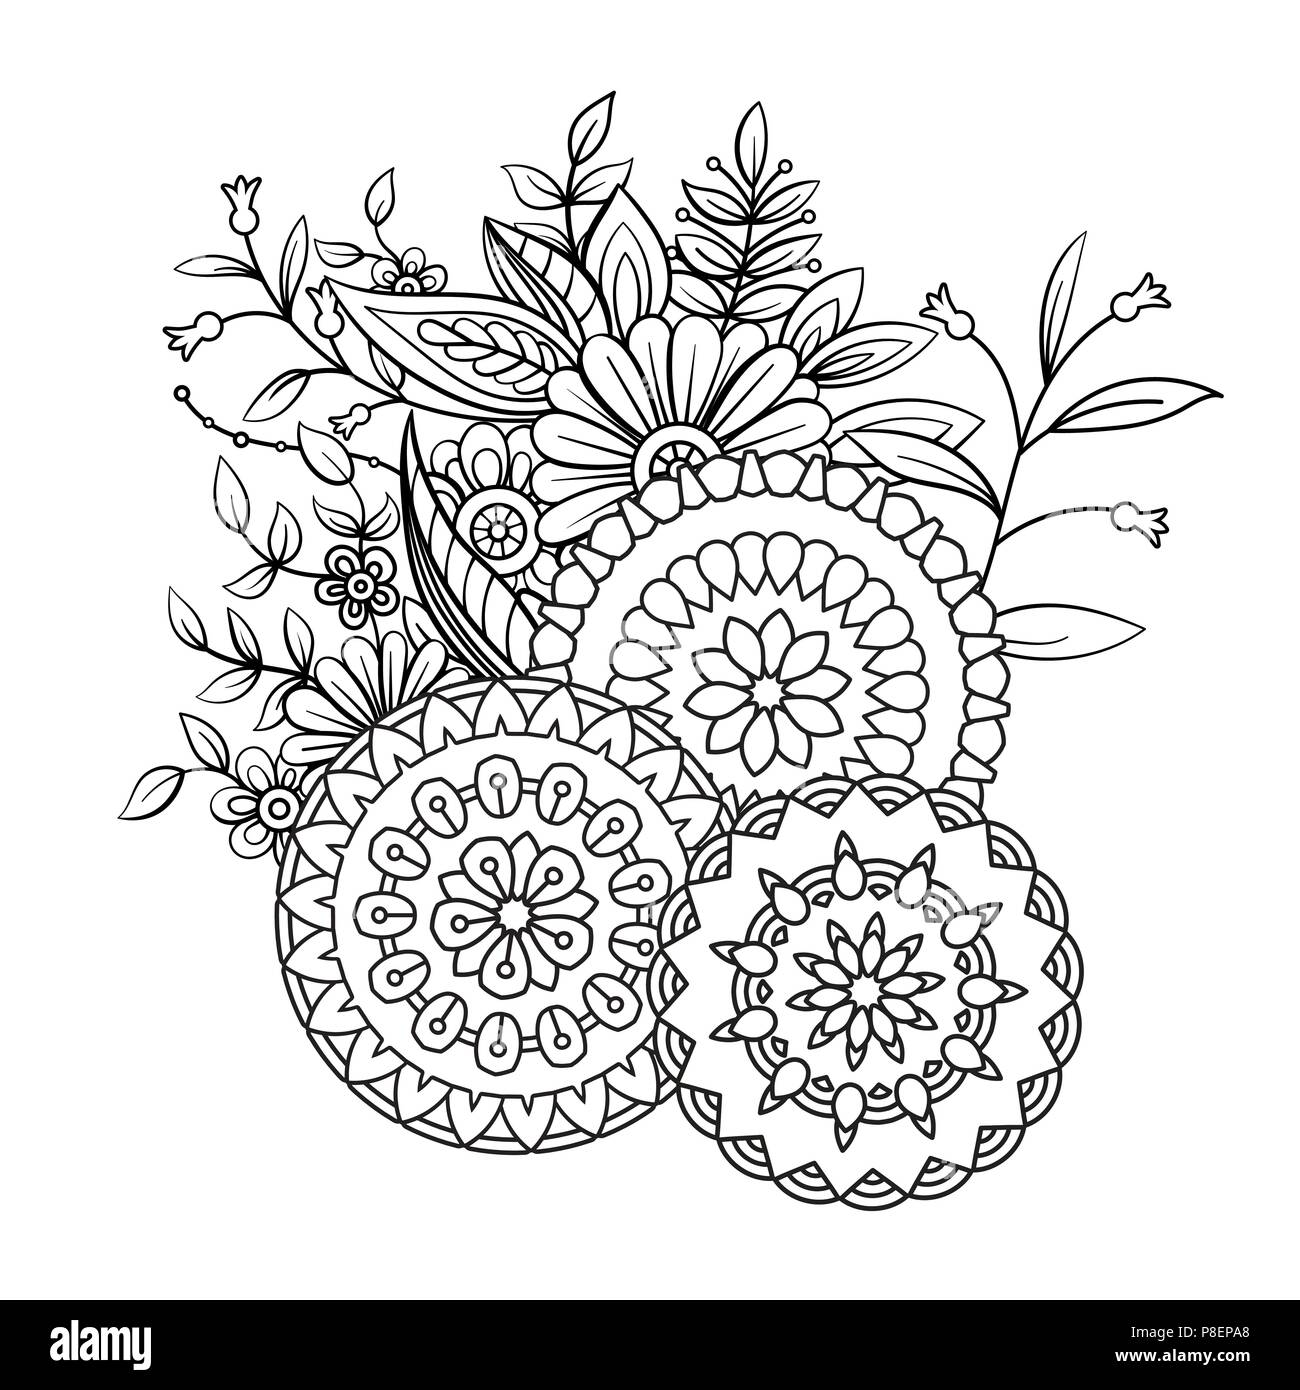 Adult Coloring Book Page With Flowers And Mandalas Floral Pattern